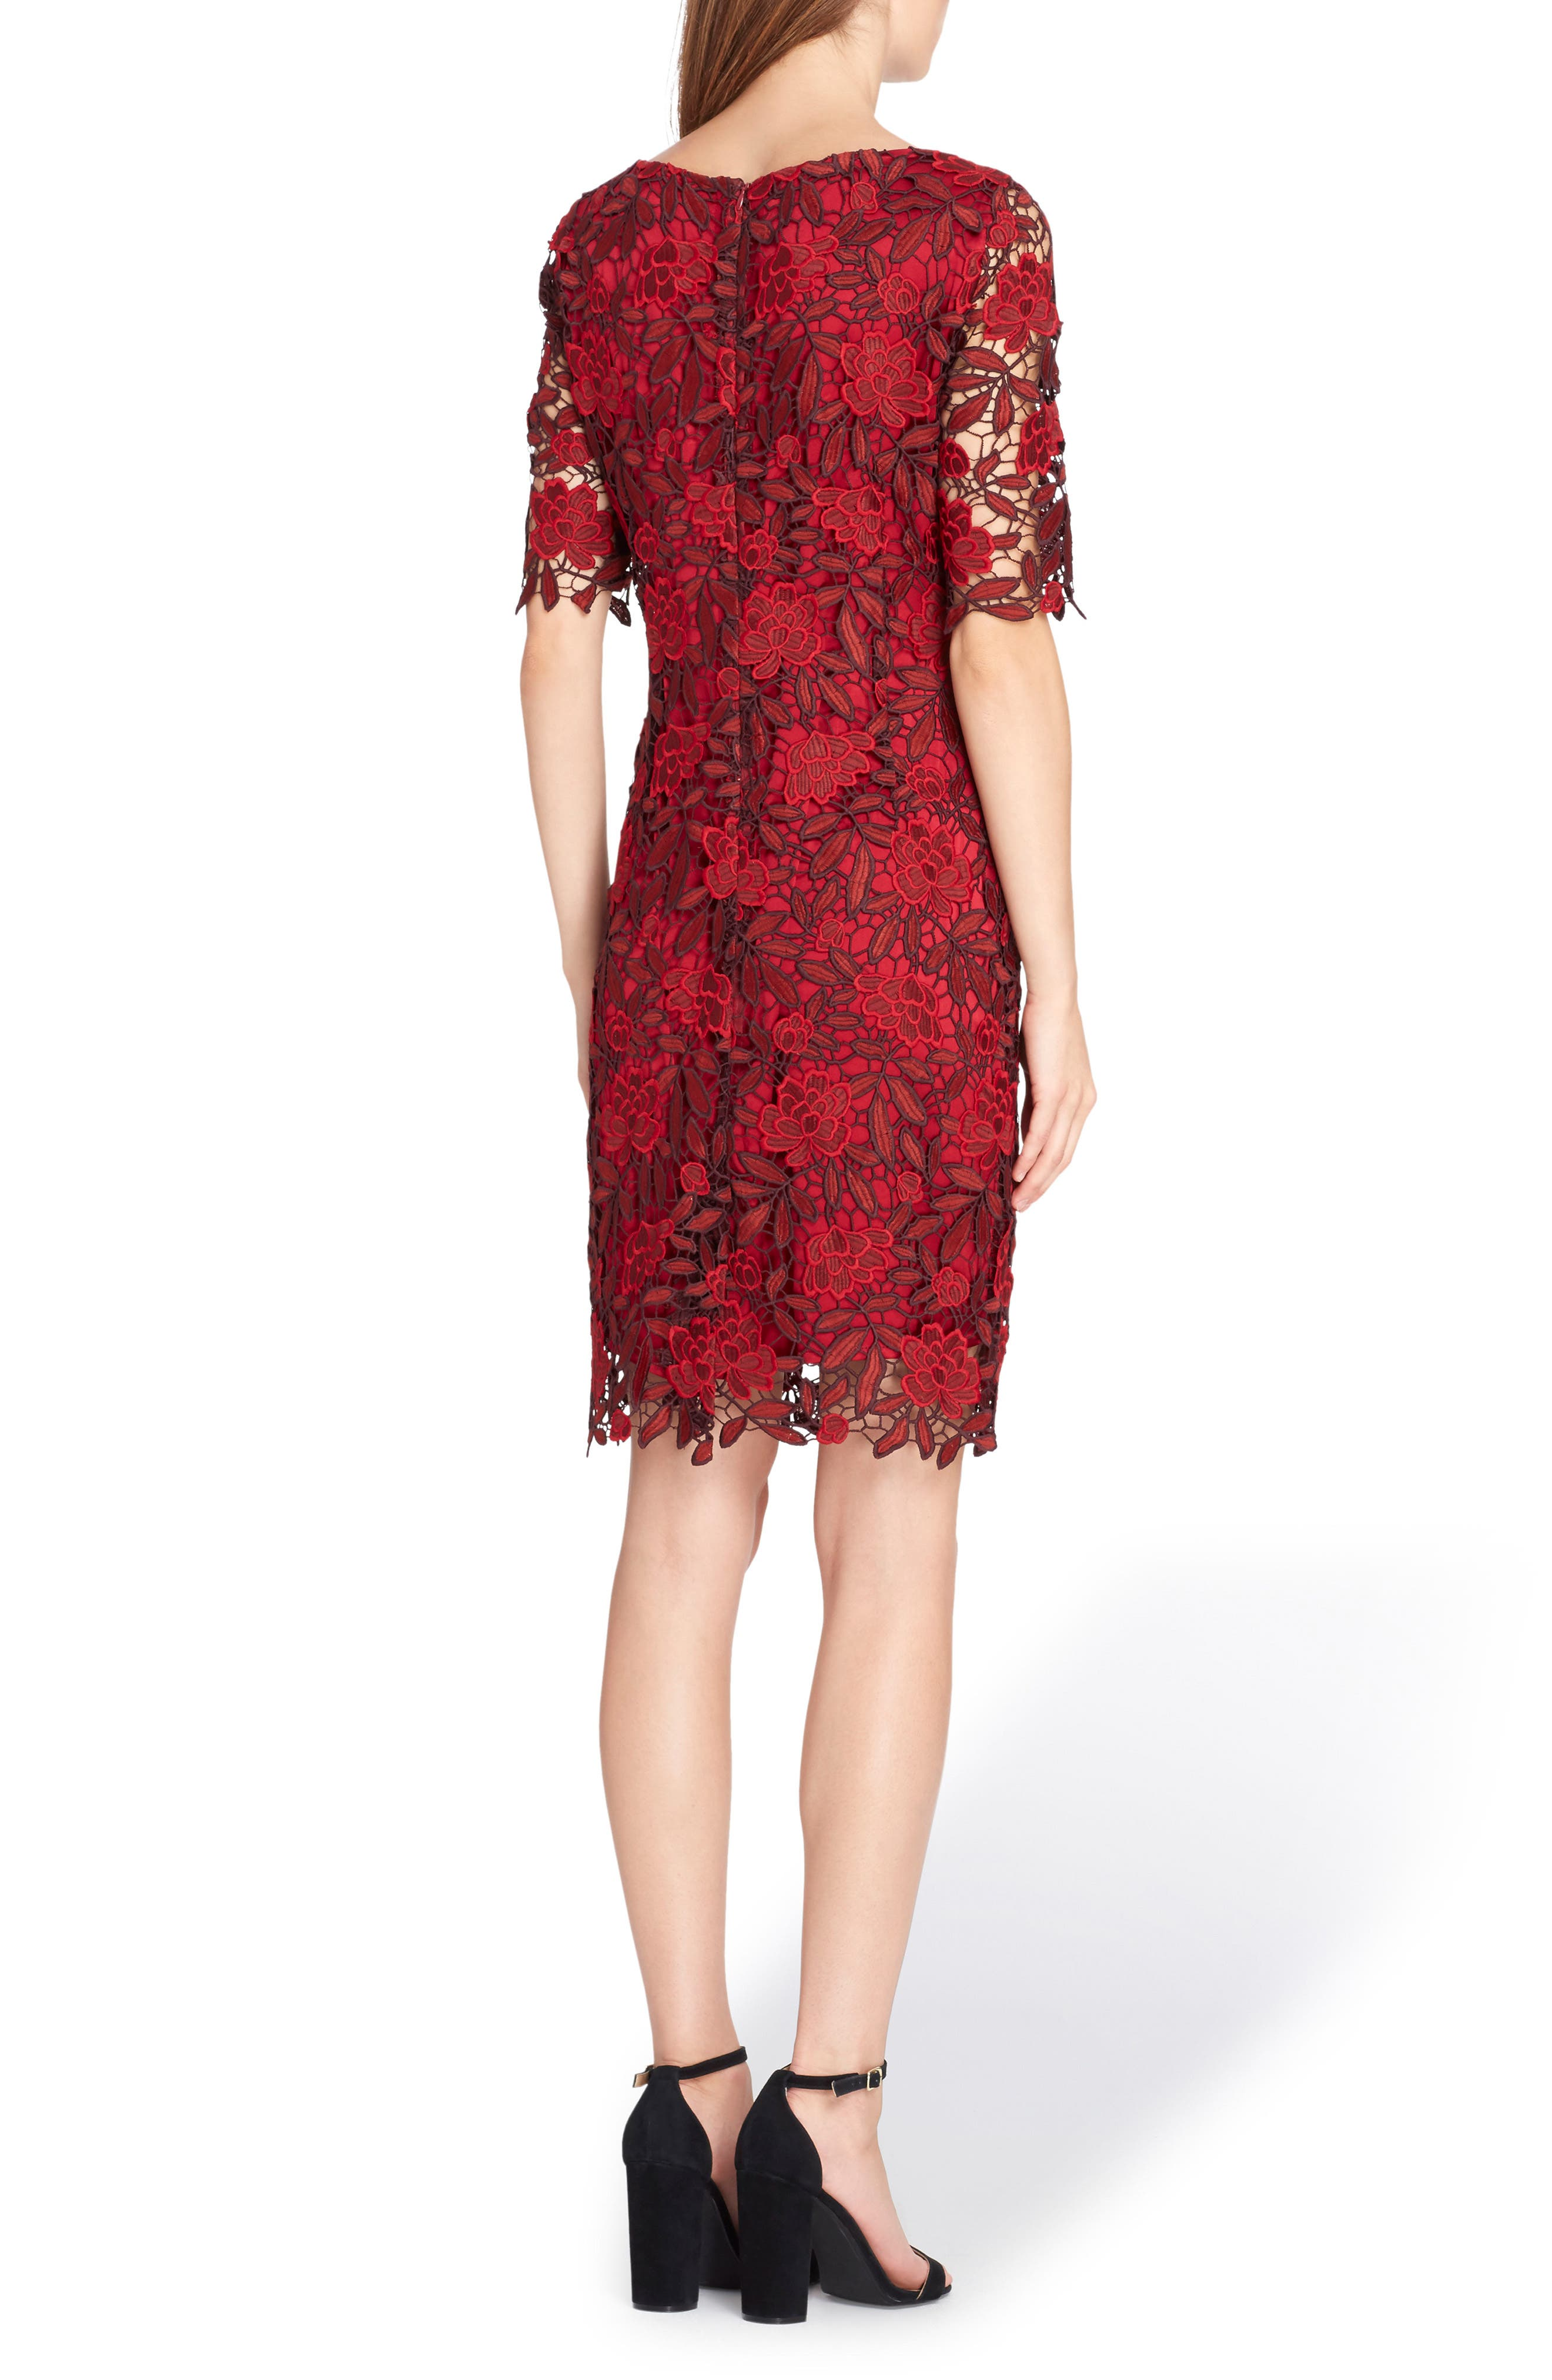 Lace Overlay Sheath Dress,                             Alternate thumbnail 2, color,                             648